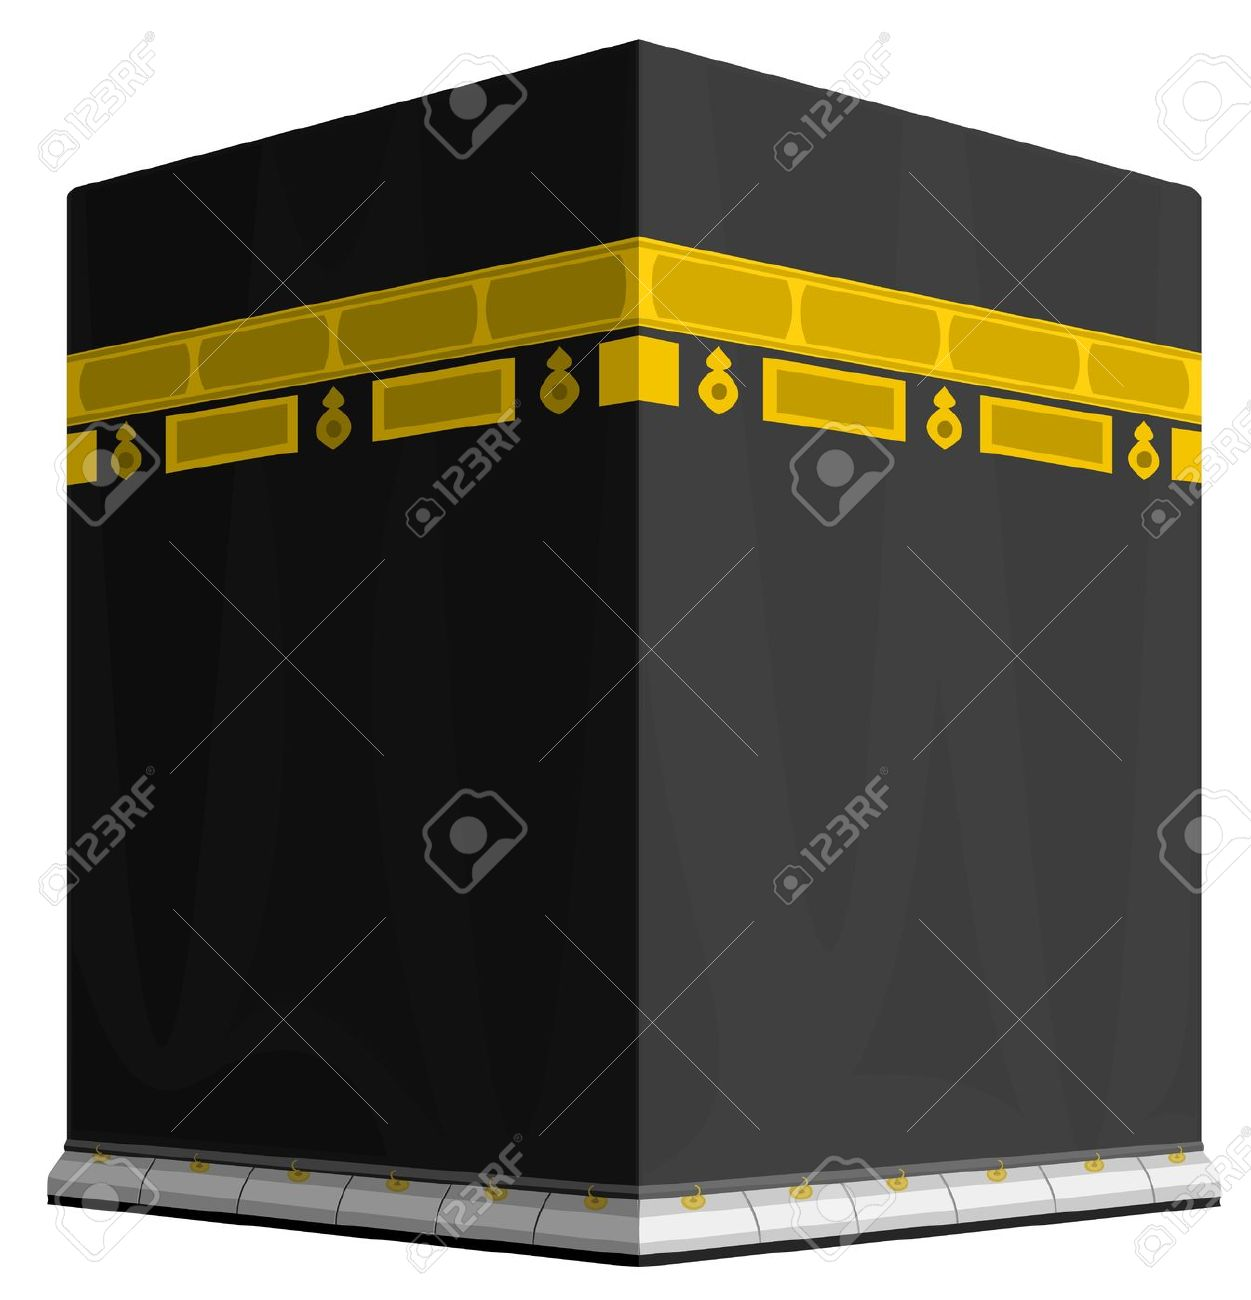 534 Kaaba Stock Illustrations, Cliparts And Royalty Free Kaaba Vectors.